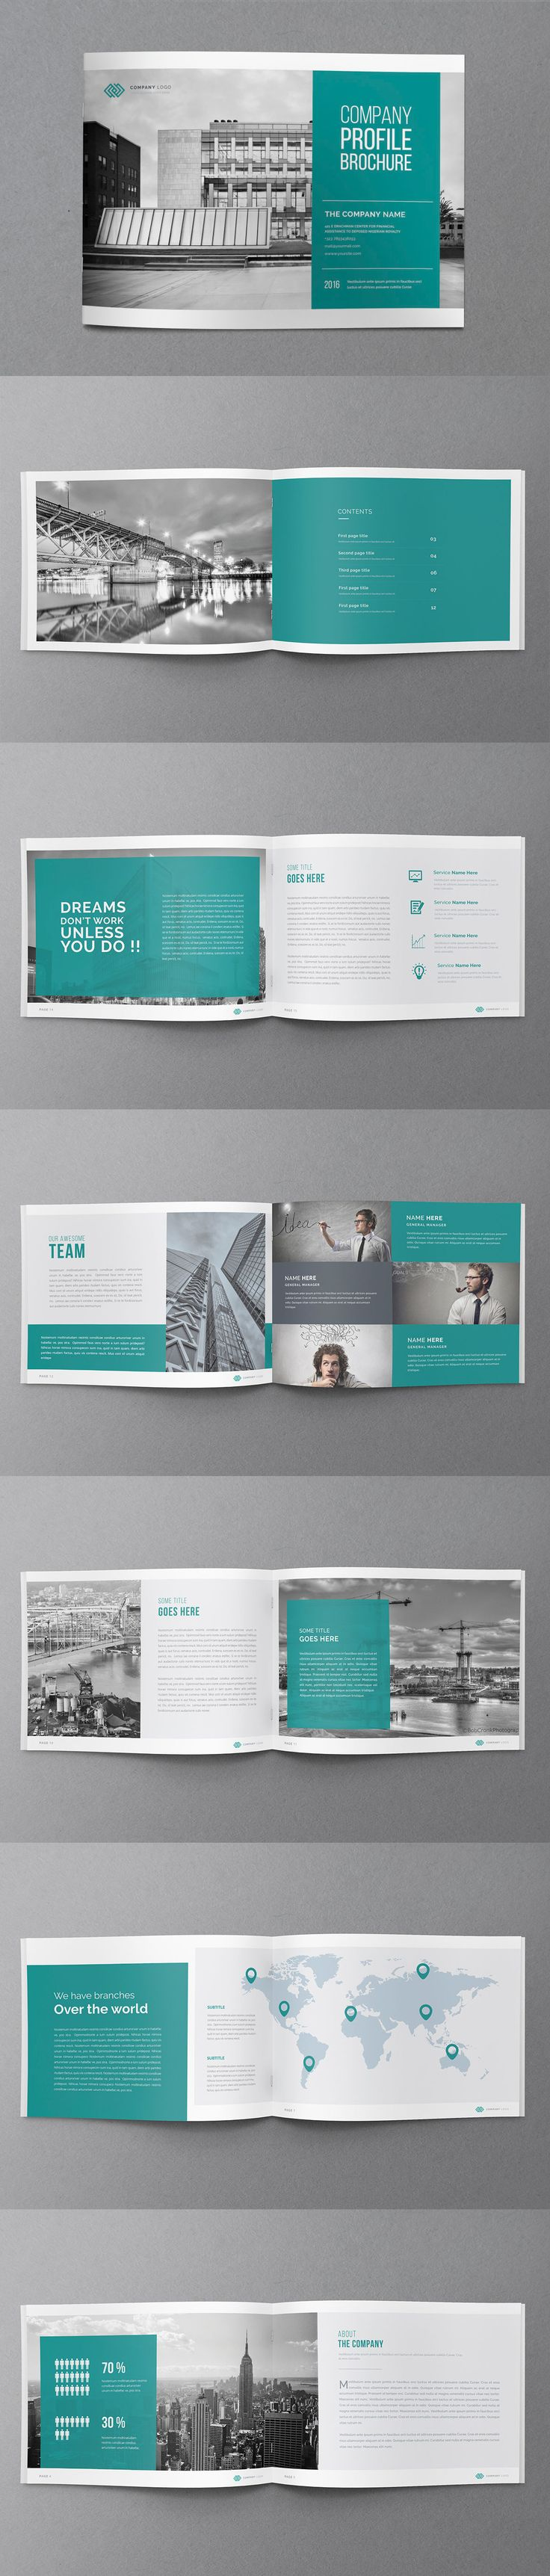 Unusual 10 Best Resumes Big 10 Label Template Round 1099 Form Template 13b Porting Templates Youthful 16 Team Bracket Template Pink1st Birthday Invite Templates 25  Best Ideas About Brochure Layout On Pinterest | Portfolio ..